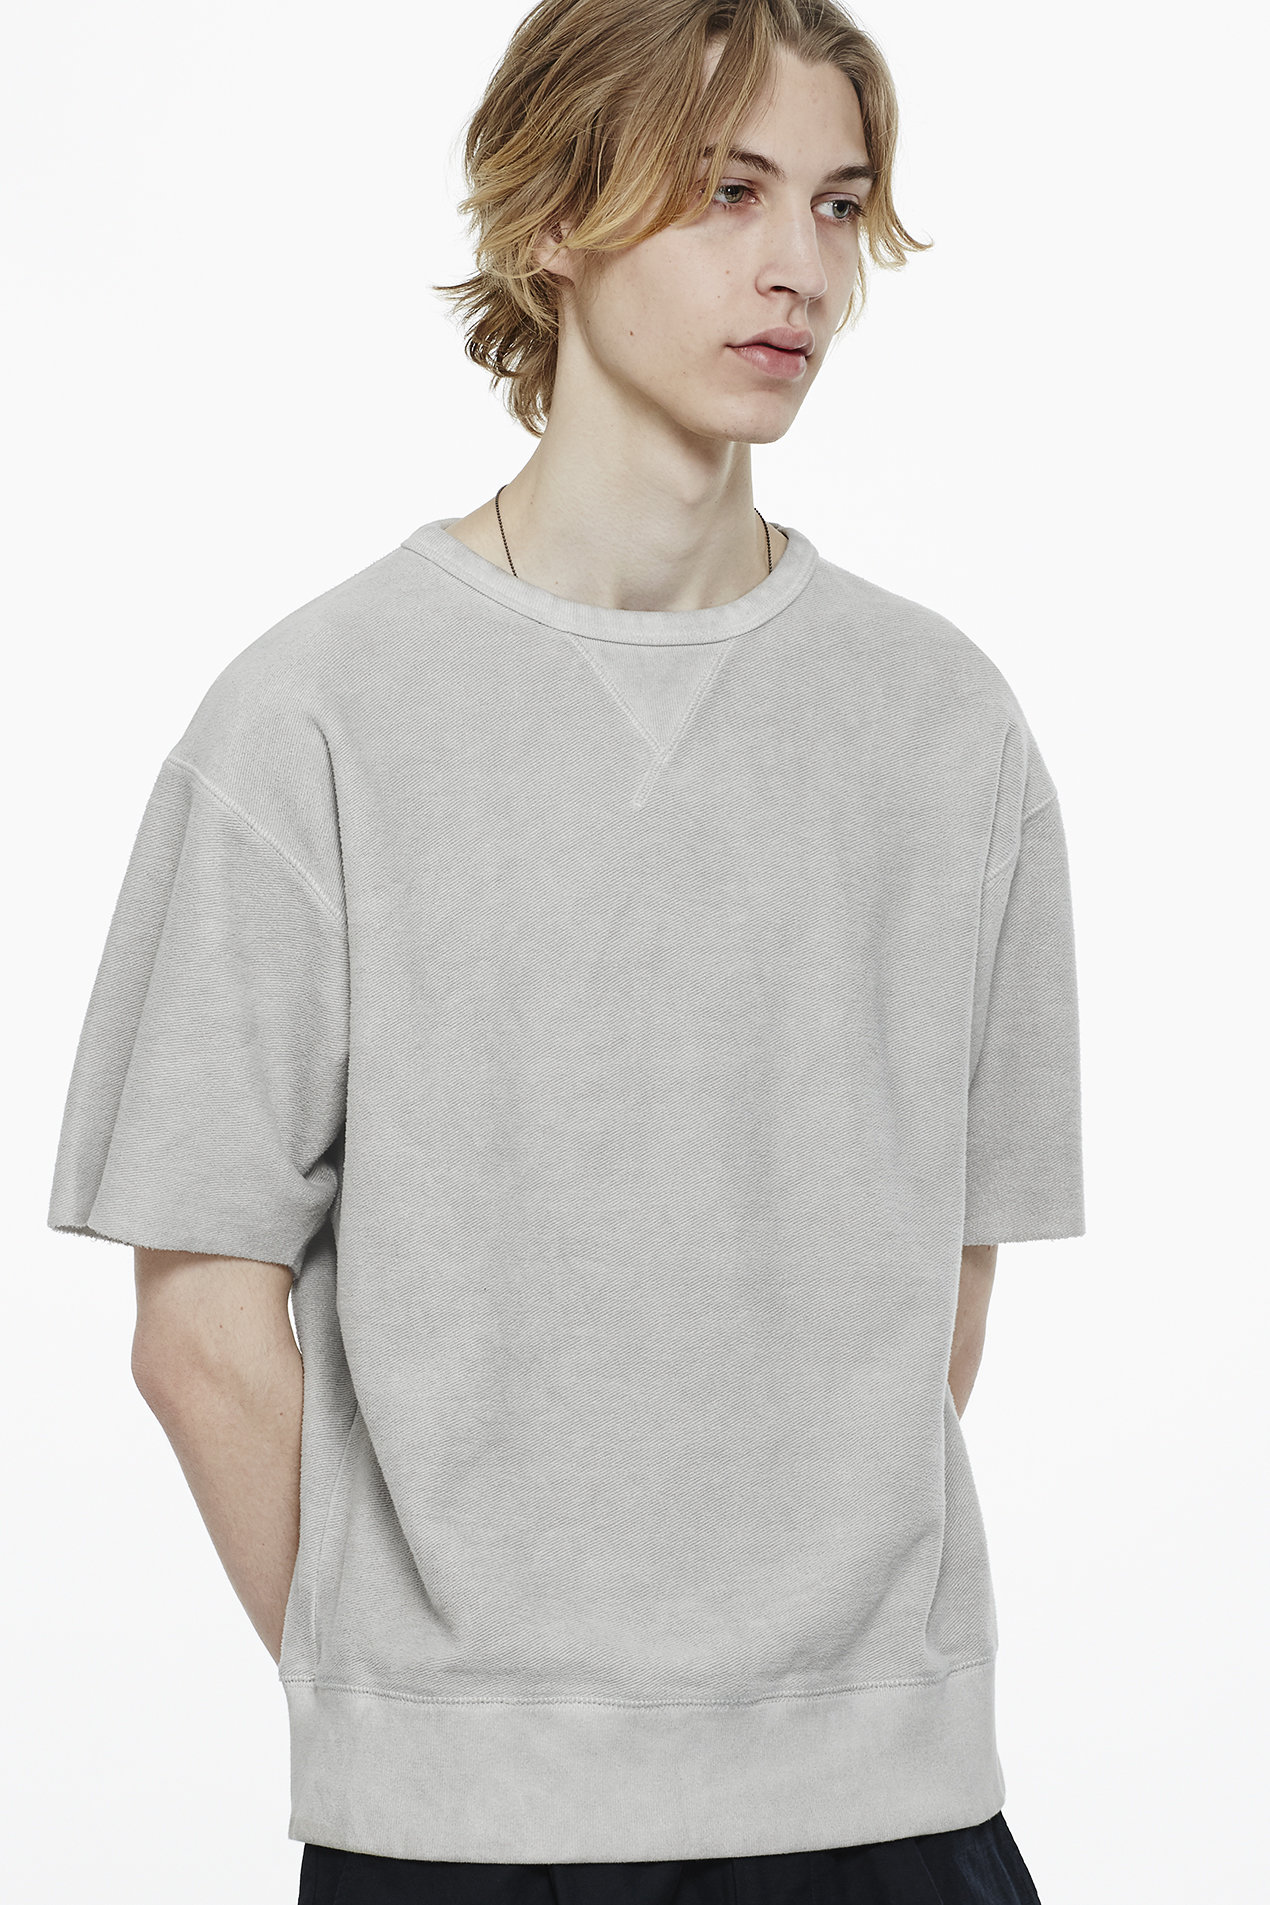 short sleeve sweatshirt, saturdays nyc, spring, layer